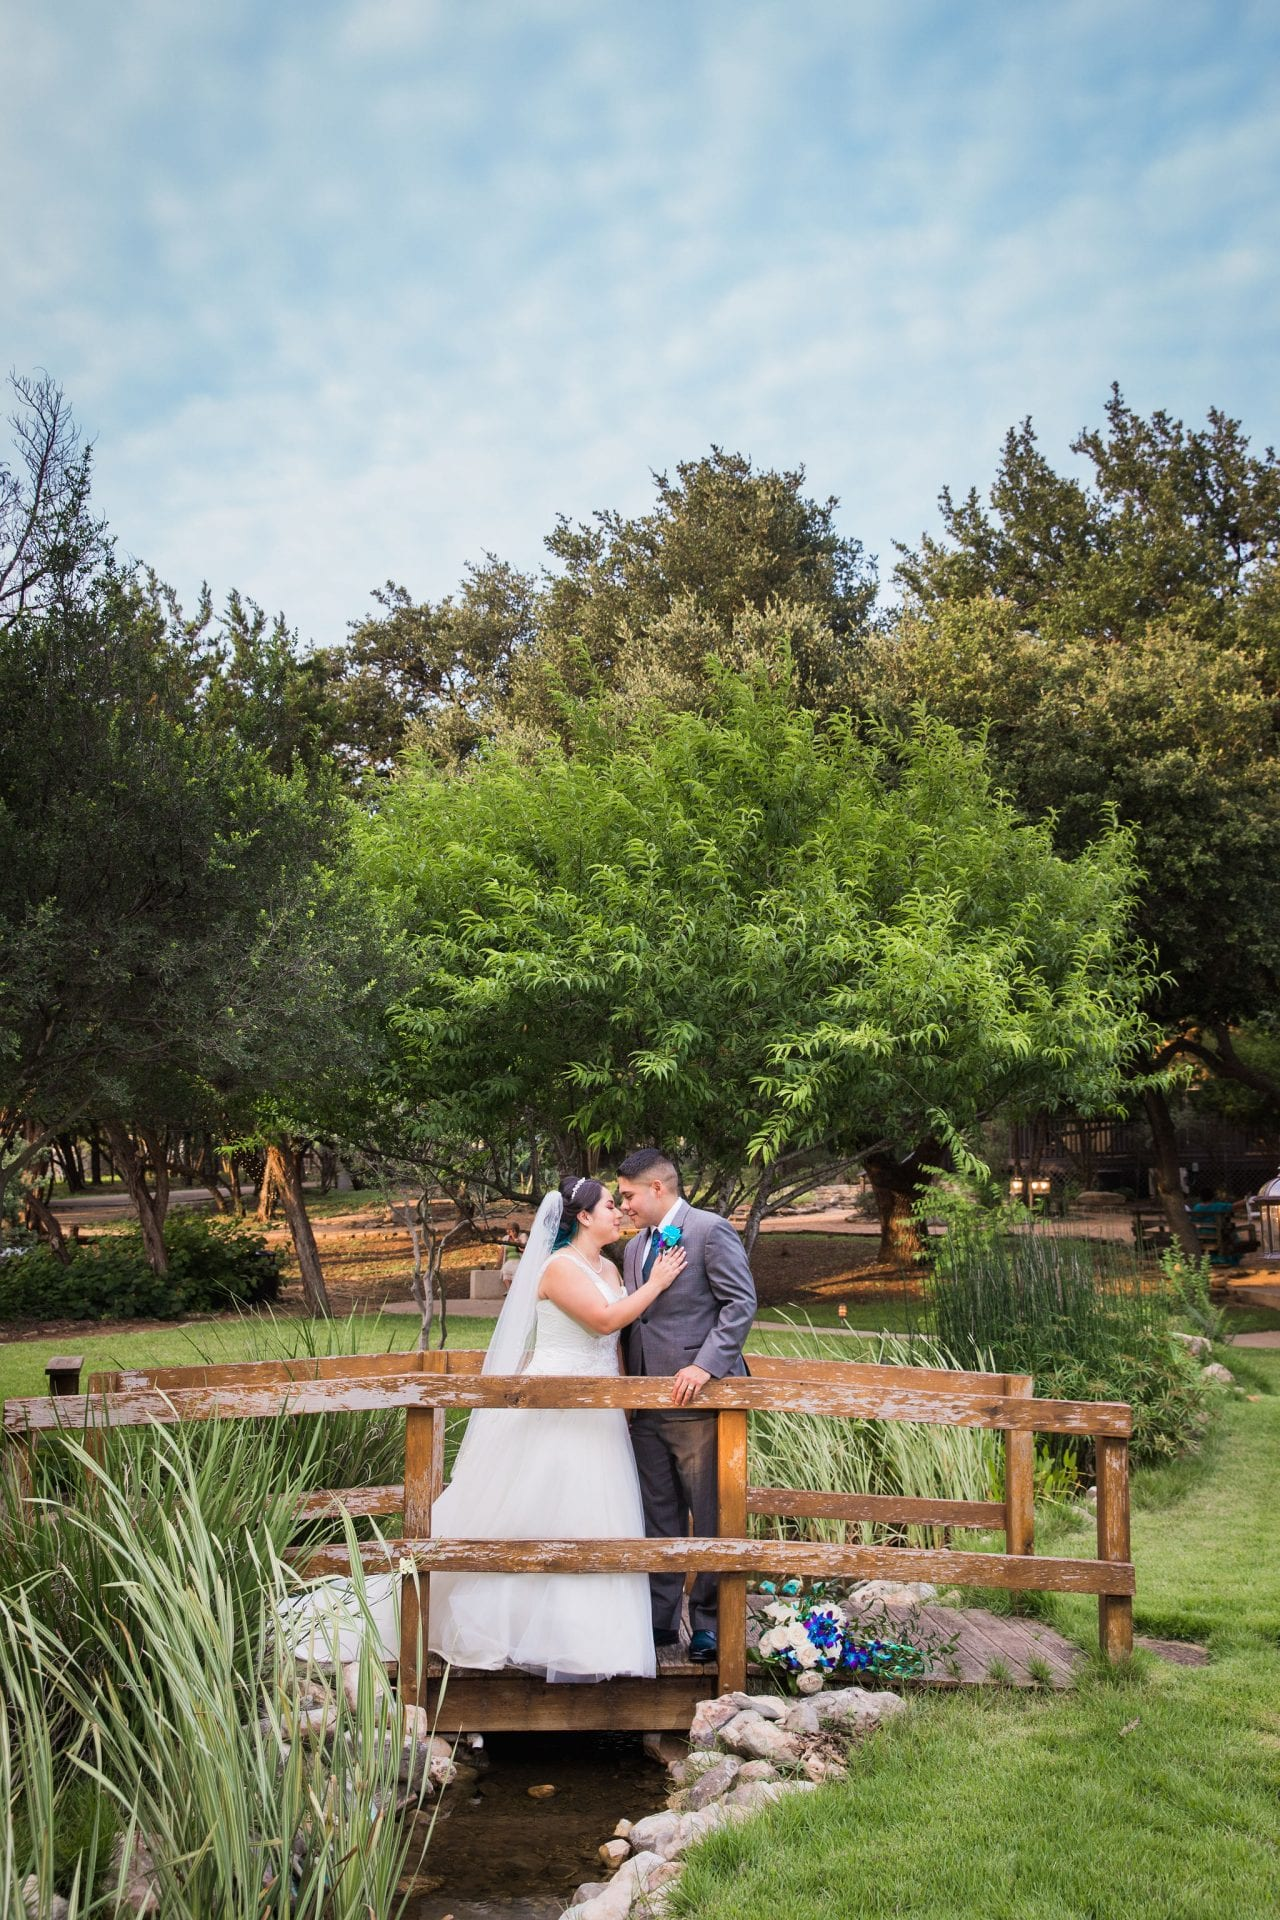 Alex and Adrien Wedding at The Gardens at Old Town in bridge